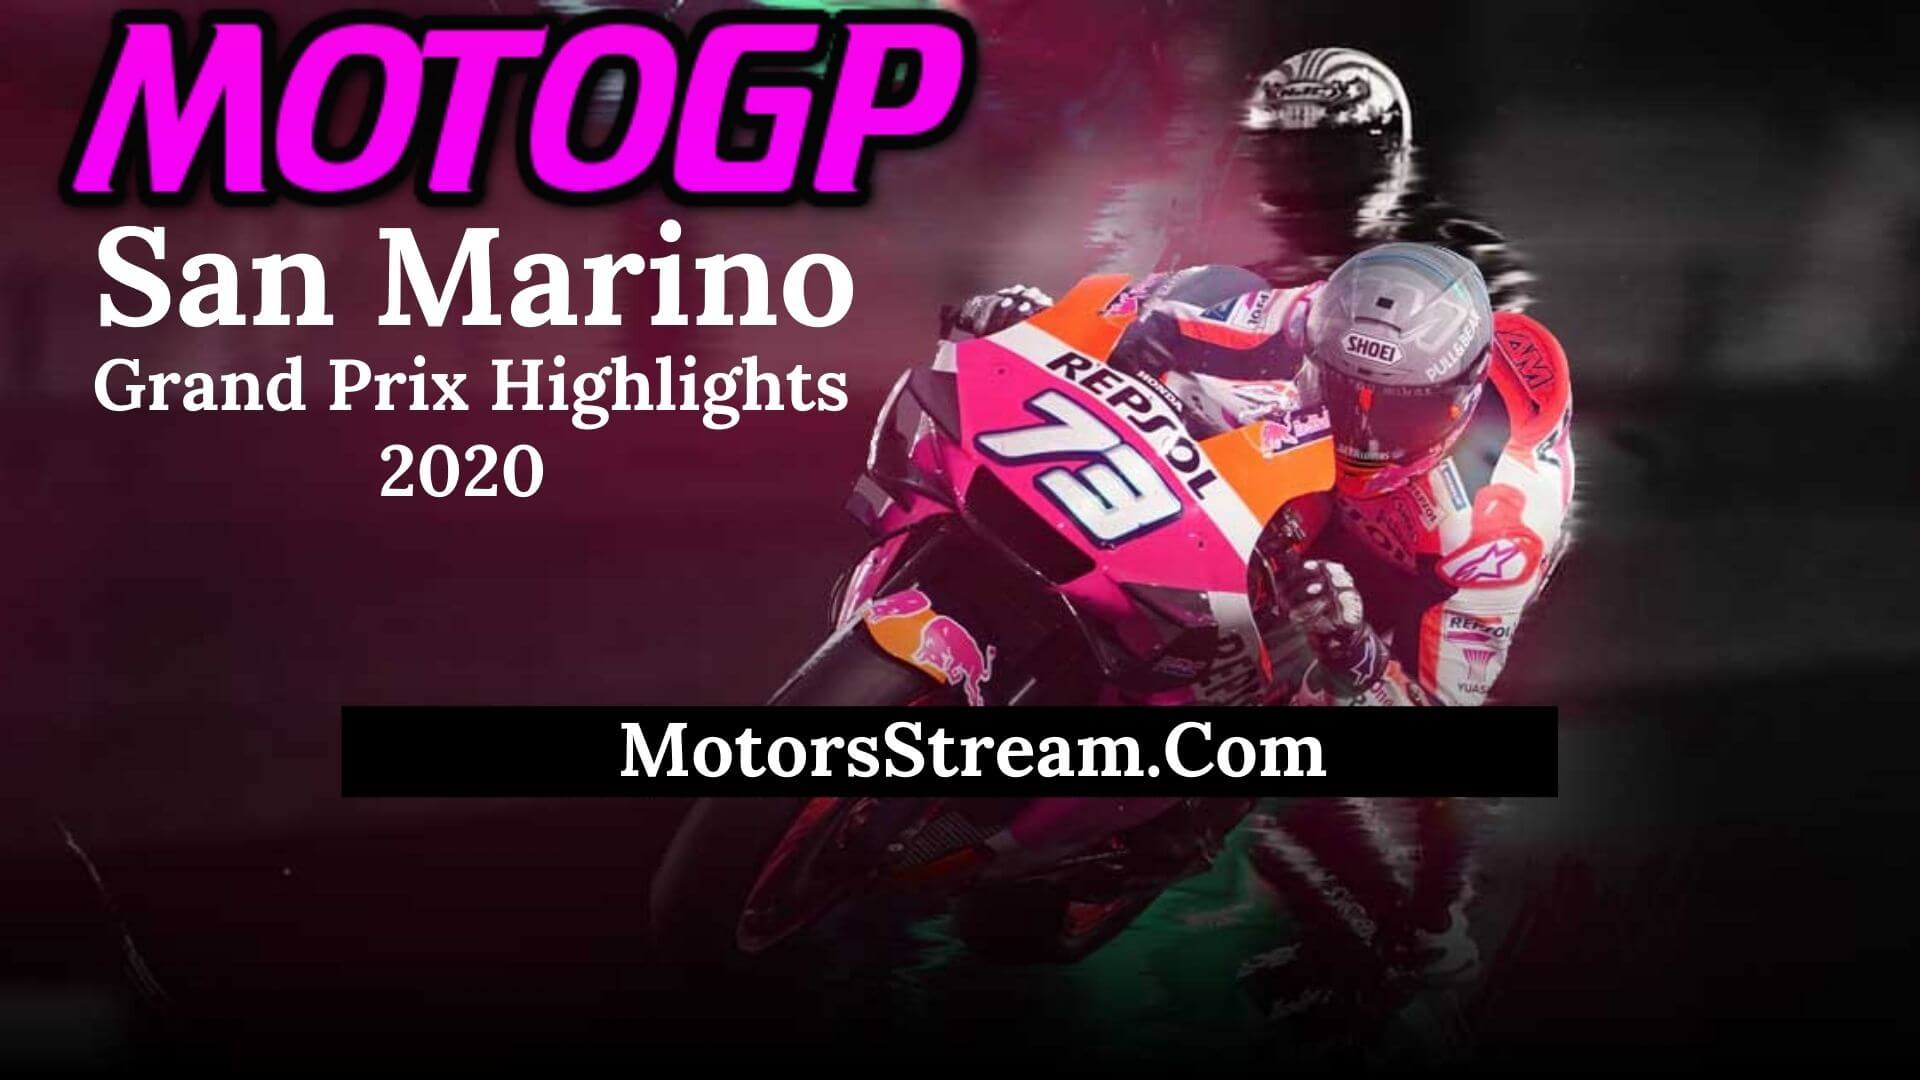 San Marino Grand Prix Highlights 2020 MotoGP